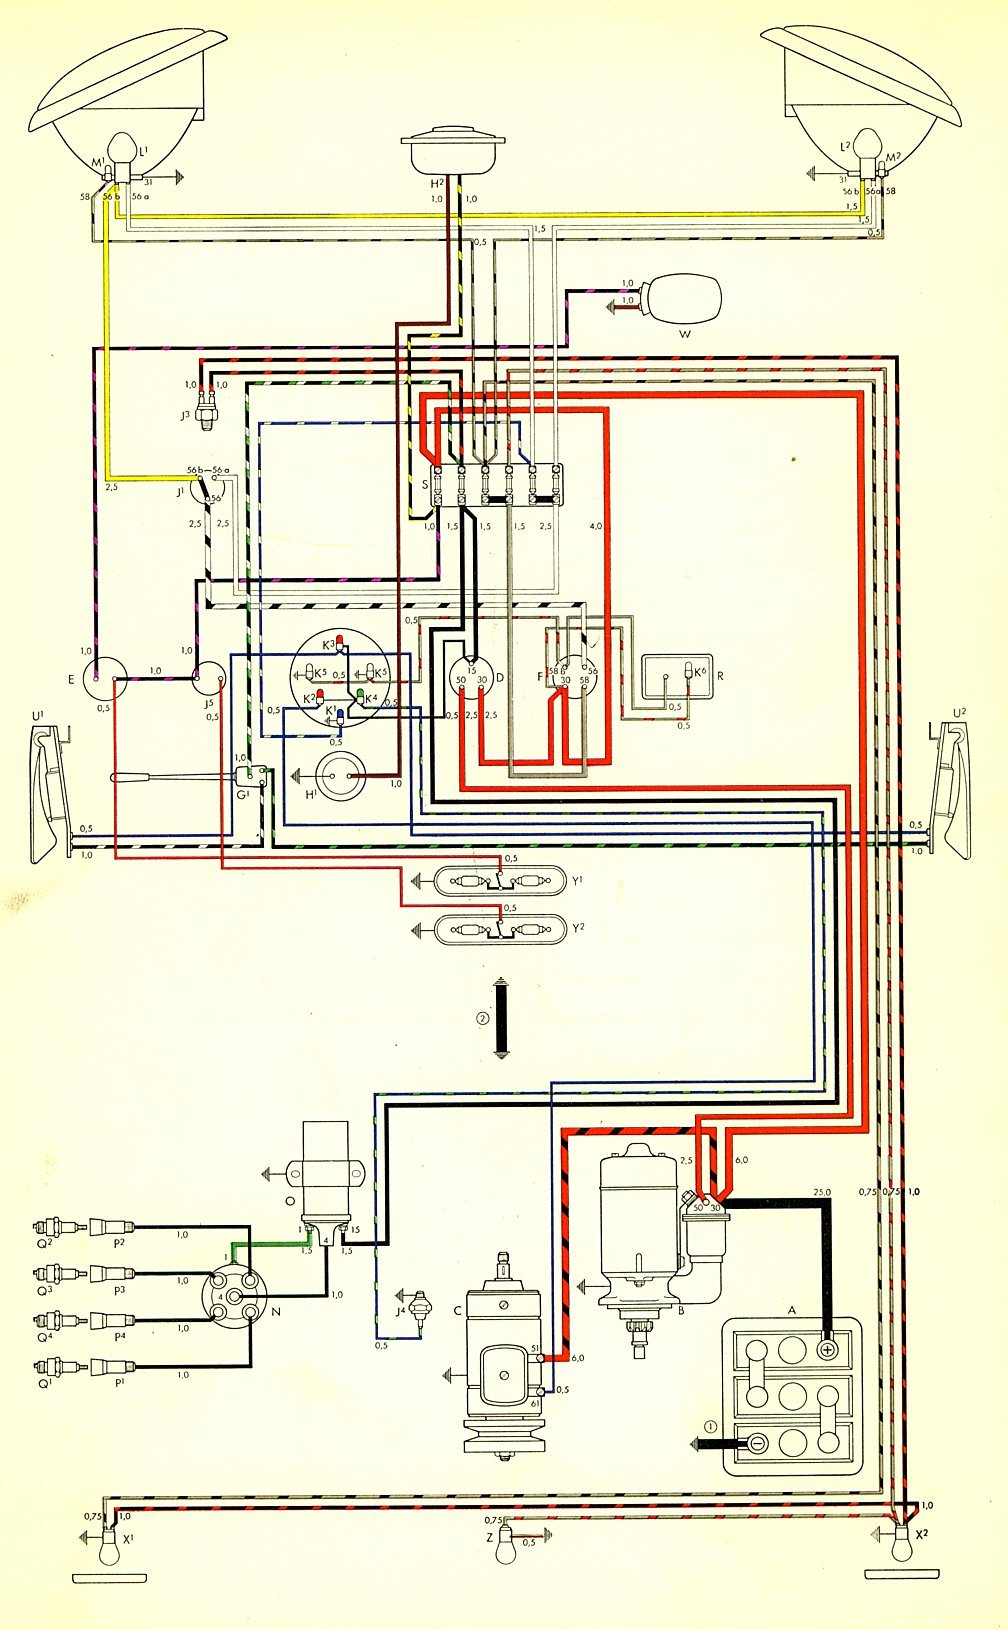 bus_59 wiring diagram for 1971 vw bus readingrat net 1978 vw bus fuse box diagram at bakdesigns.co